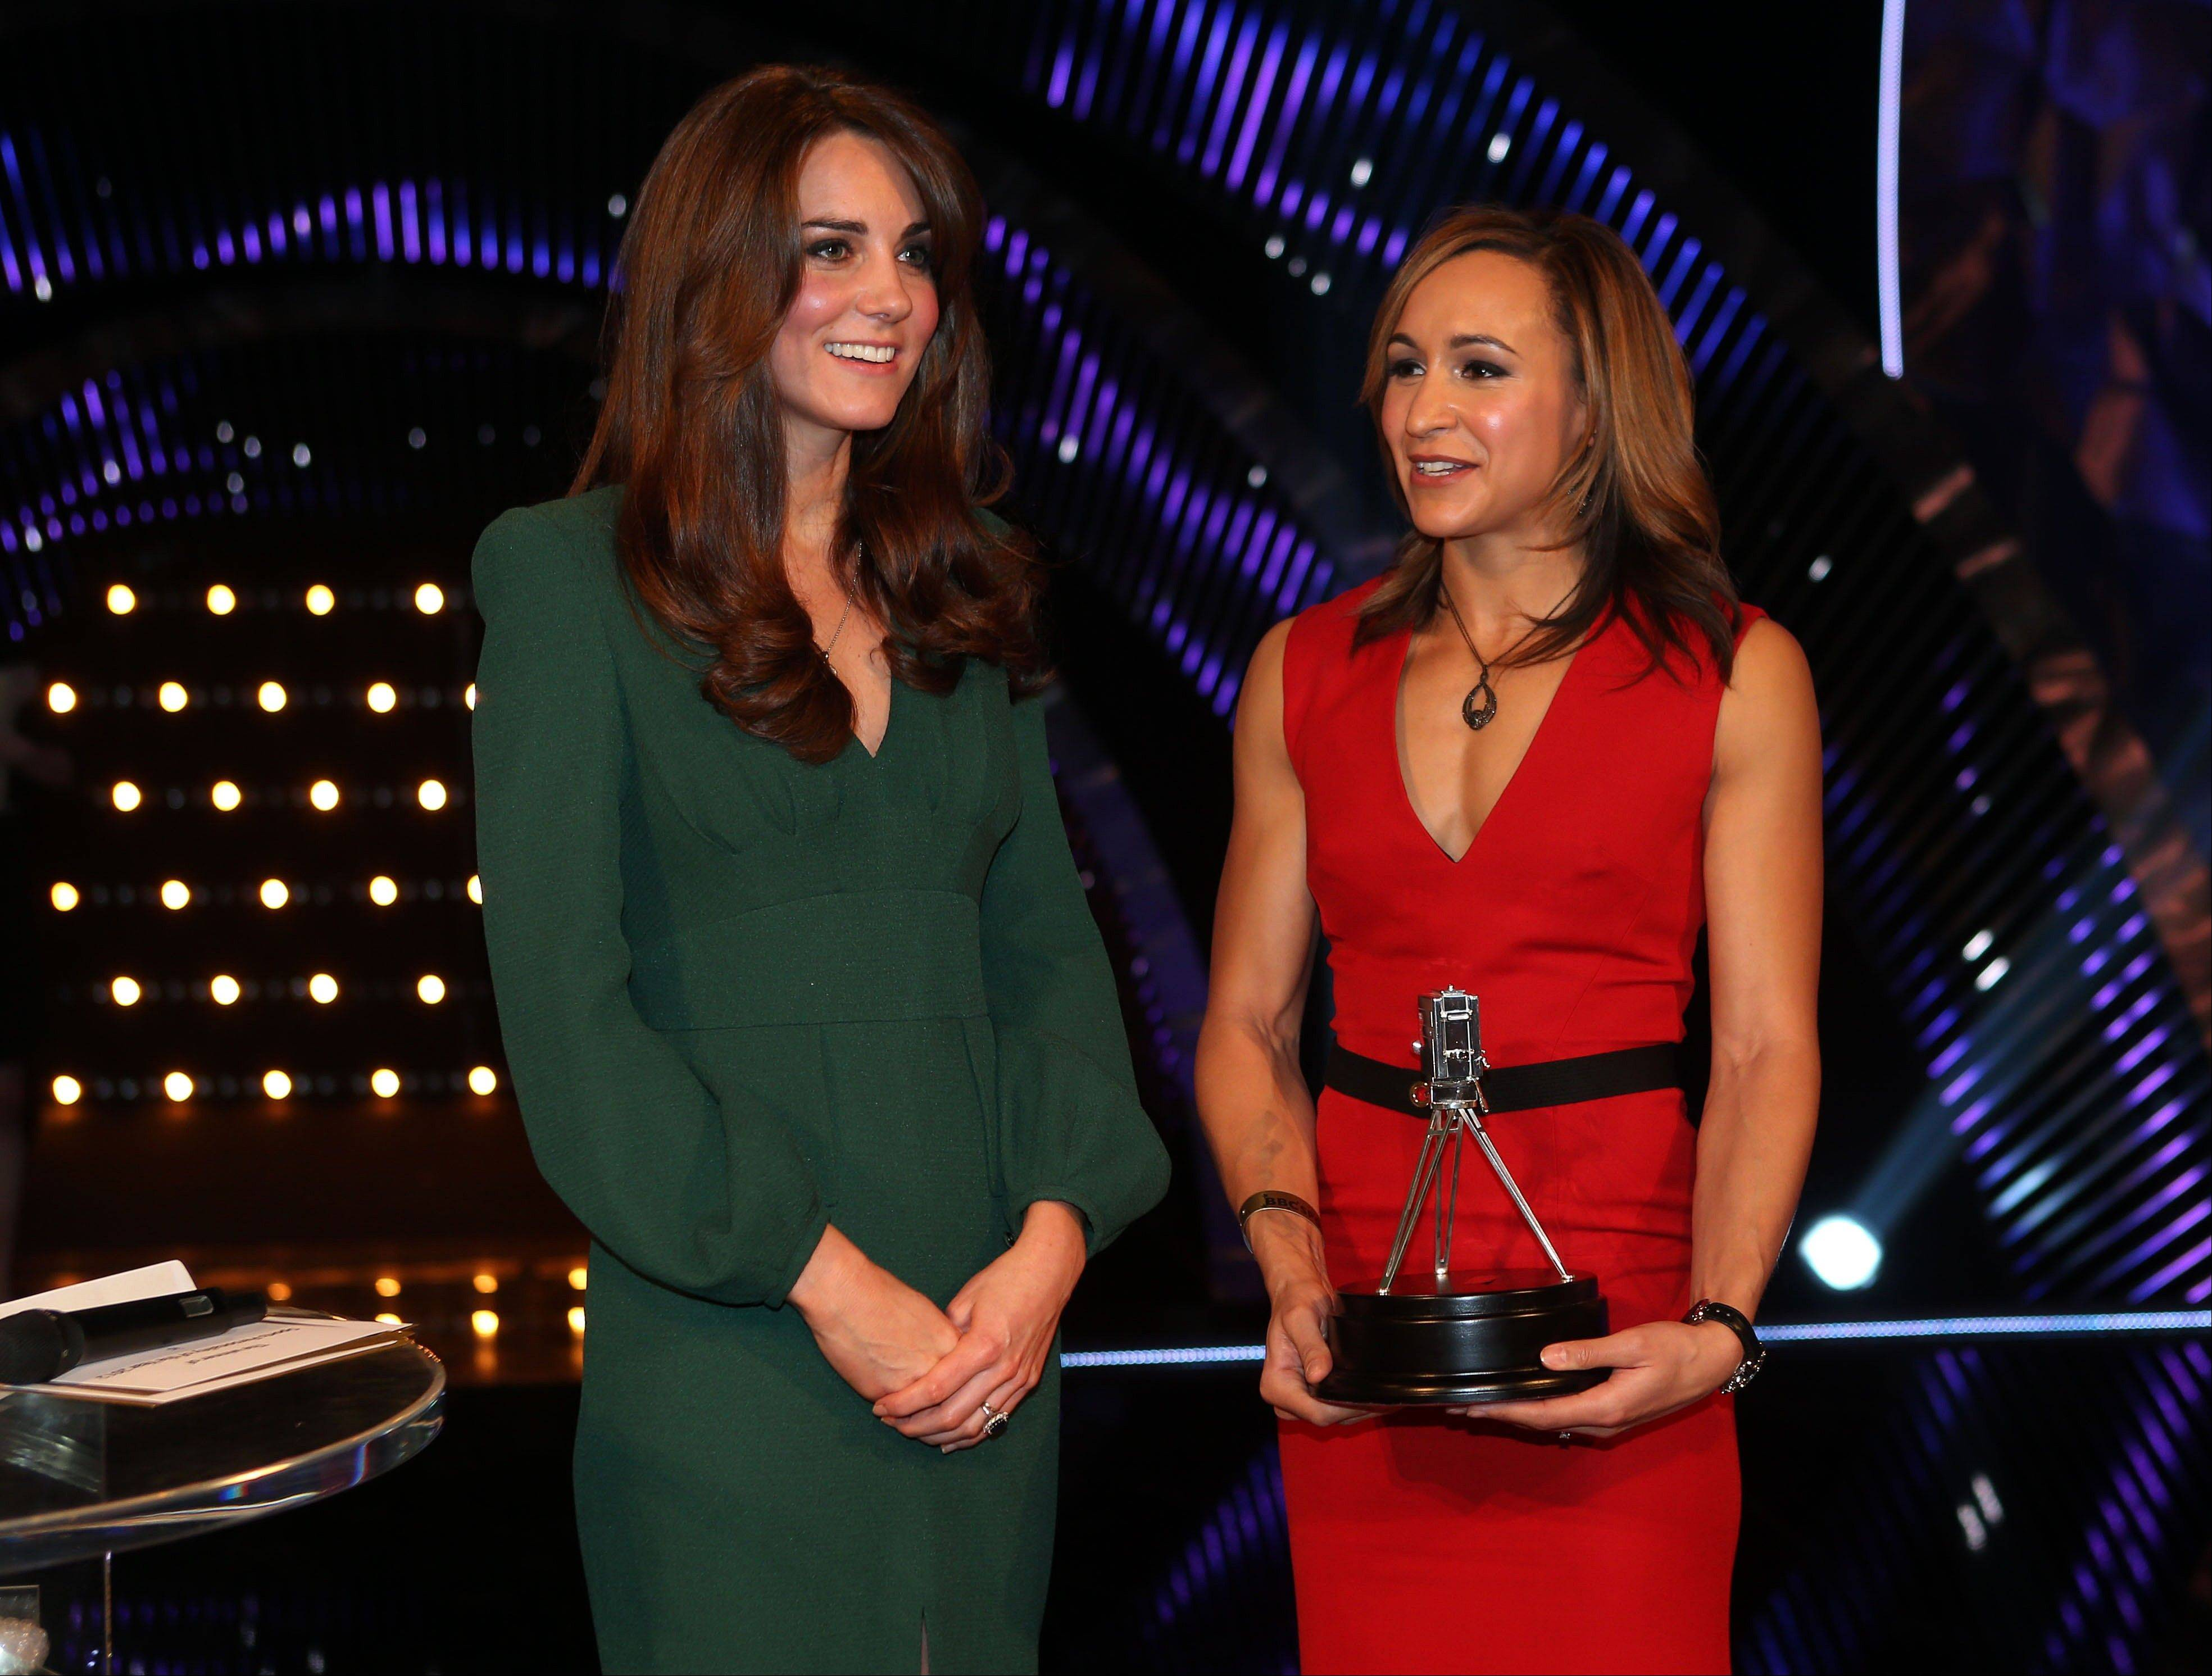 Kate, the Duchess of Cambridge, left, stands alongside second place Sports Personality of the Year 2012, British athlete Jessica Ennis, during the BBC Sports Personality of the Year Awards 2012 in London on Sunday.